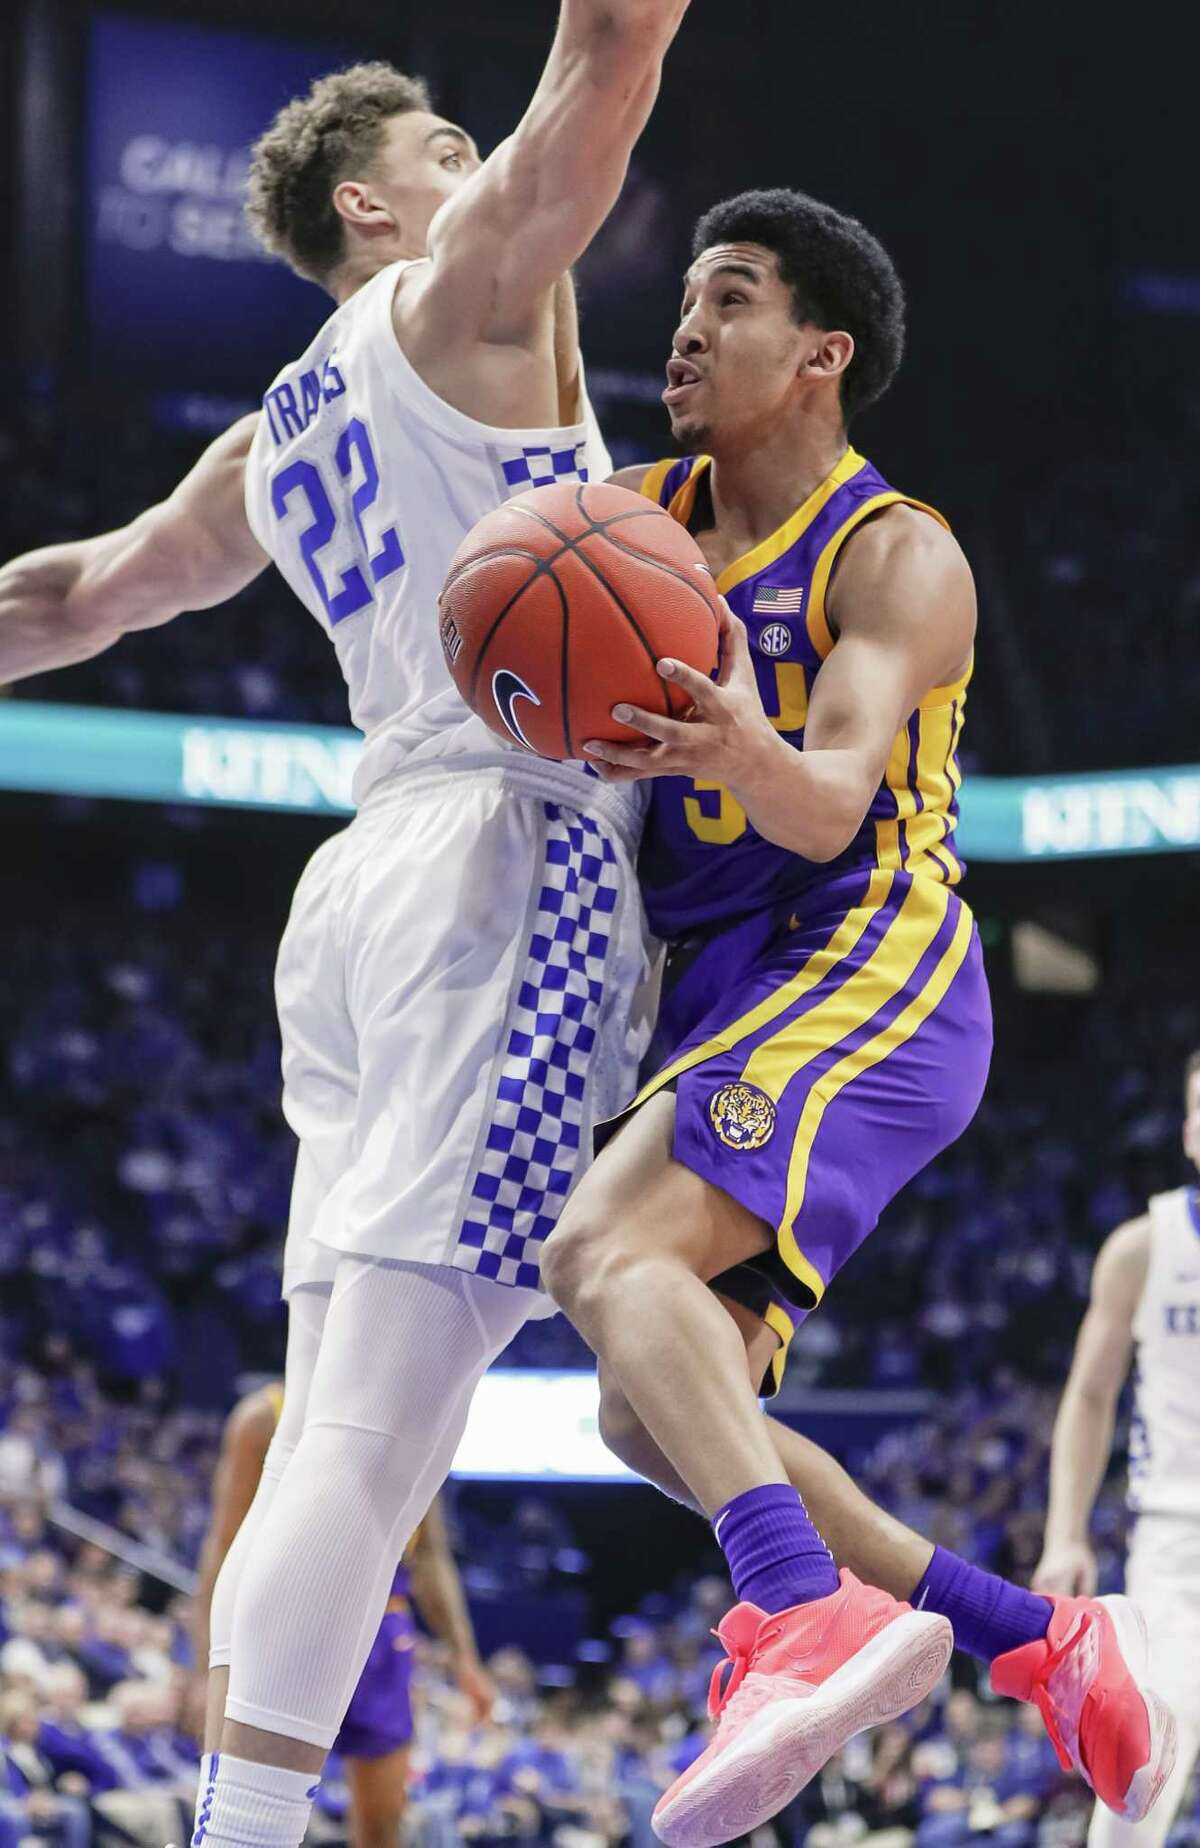 LEXINGTON, KY - FEBRUARY 12: Tremont Waters #3 of the LSU Tigers is defended by Reid Travis #22 of the Kentucky Wildcats during the first half at Rupp Arena on February 12, 2019 in Lexington, Kentucky. (Photo by Michael Hickey/Getty Images)